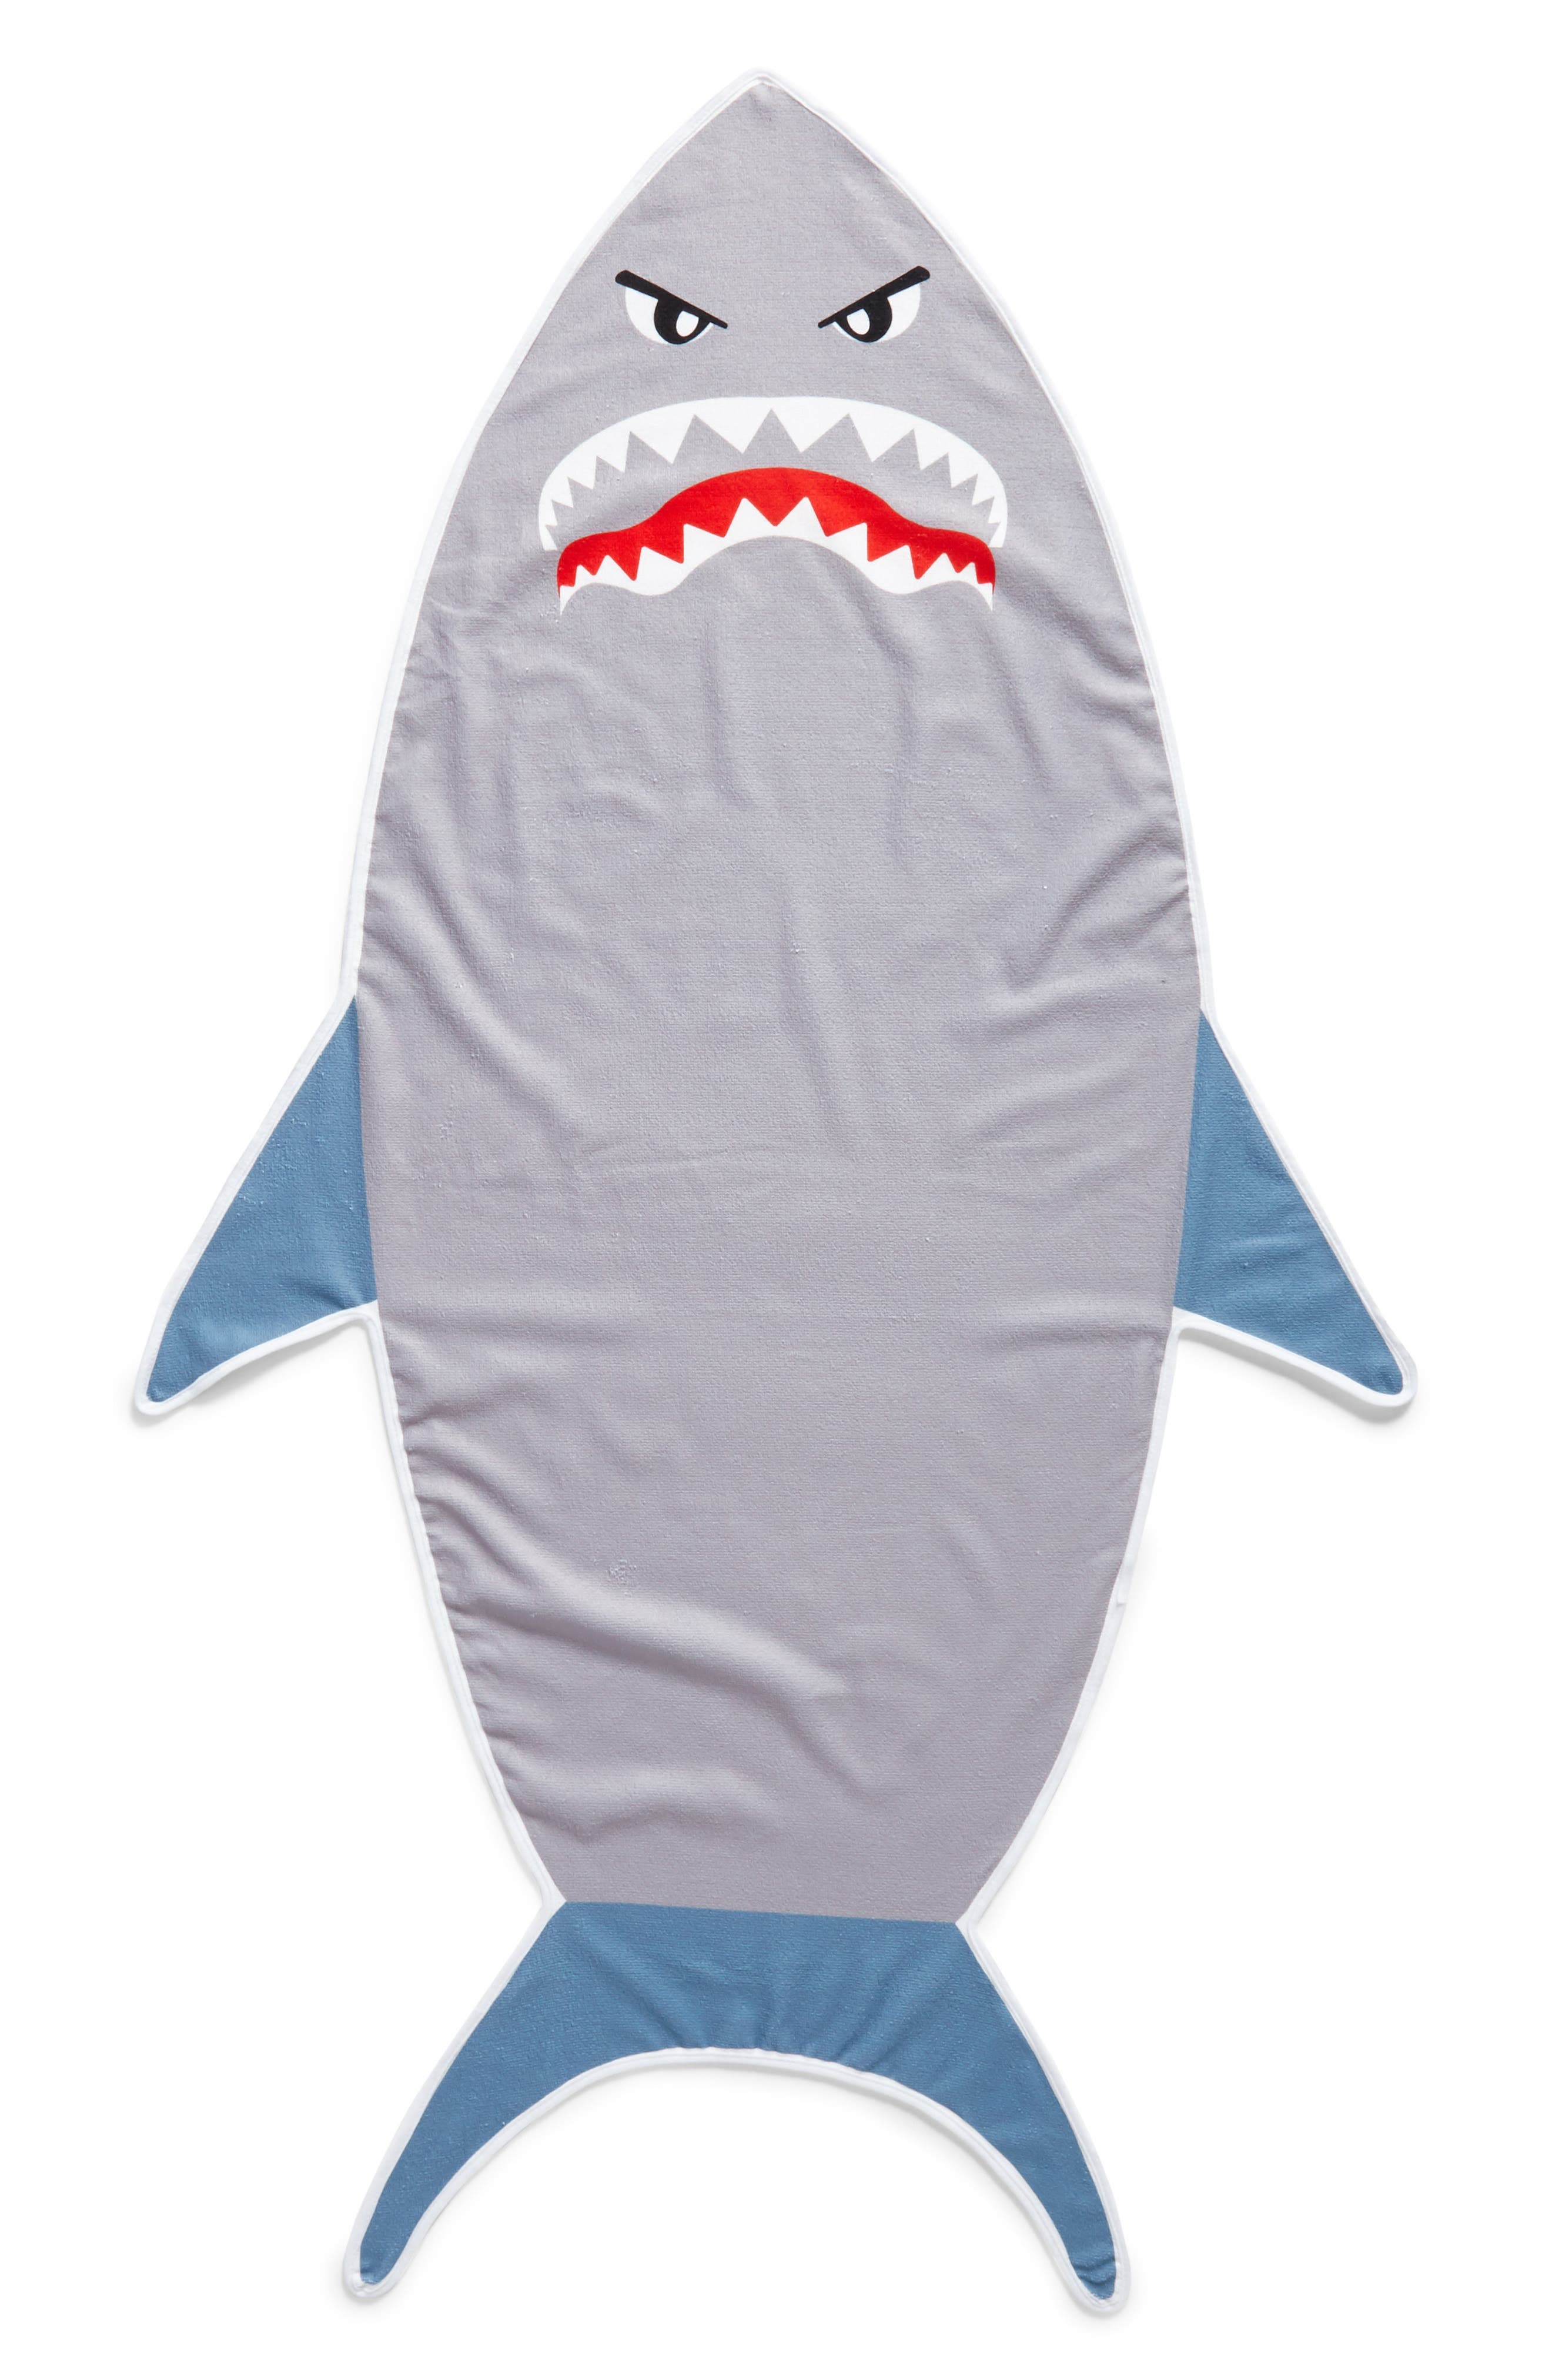 Shark Towel,                             Main thumbnail 1, color,                             Grey Combo